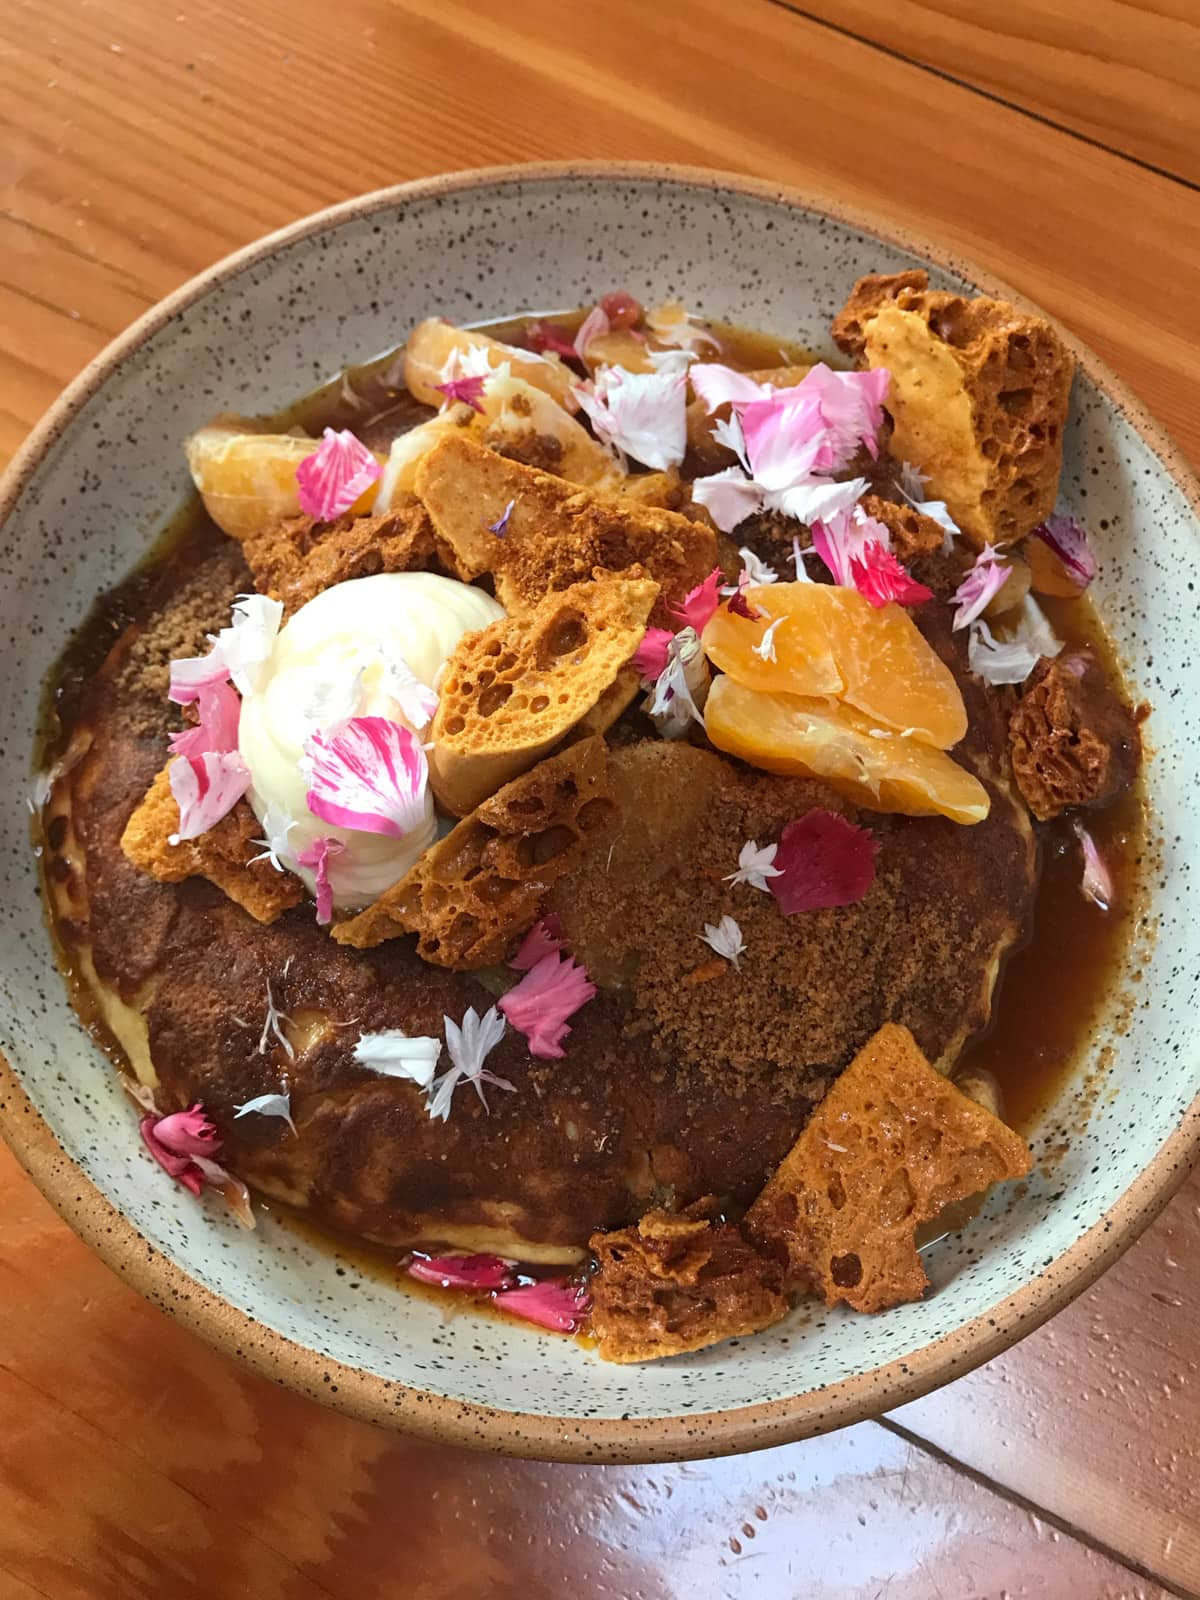 A bowl with hotcakes, decorated with flowers and served with citrus fruit and honeycomb